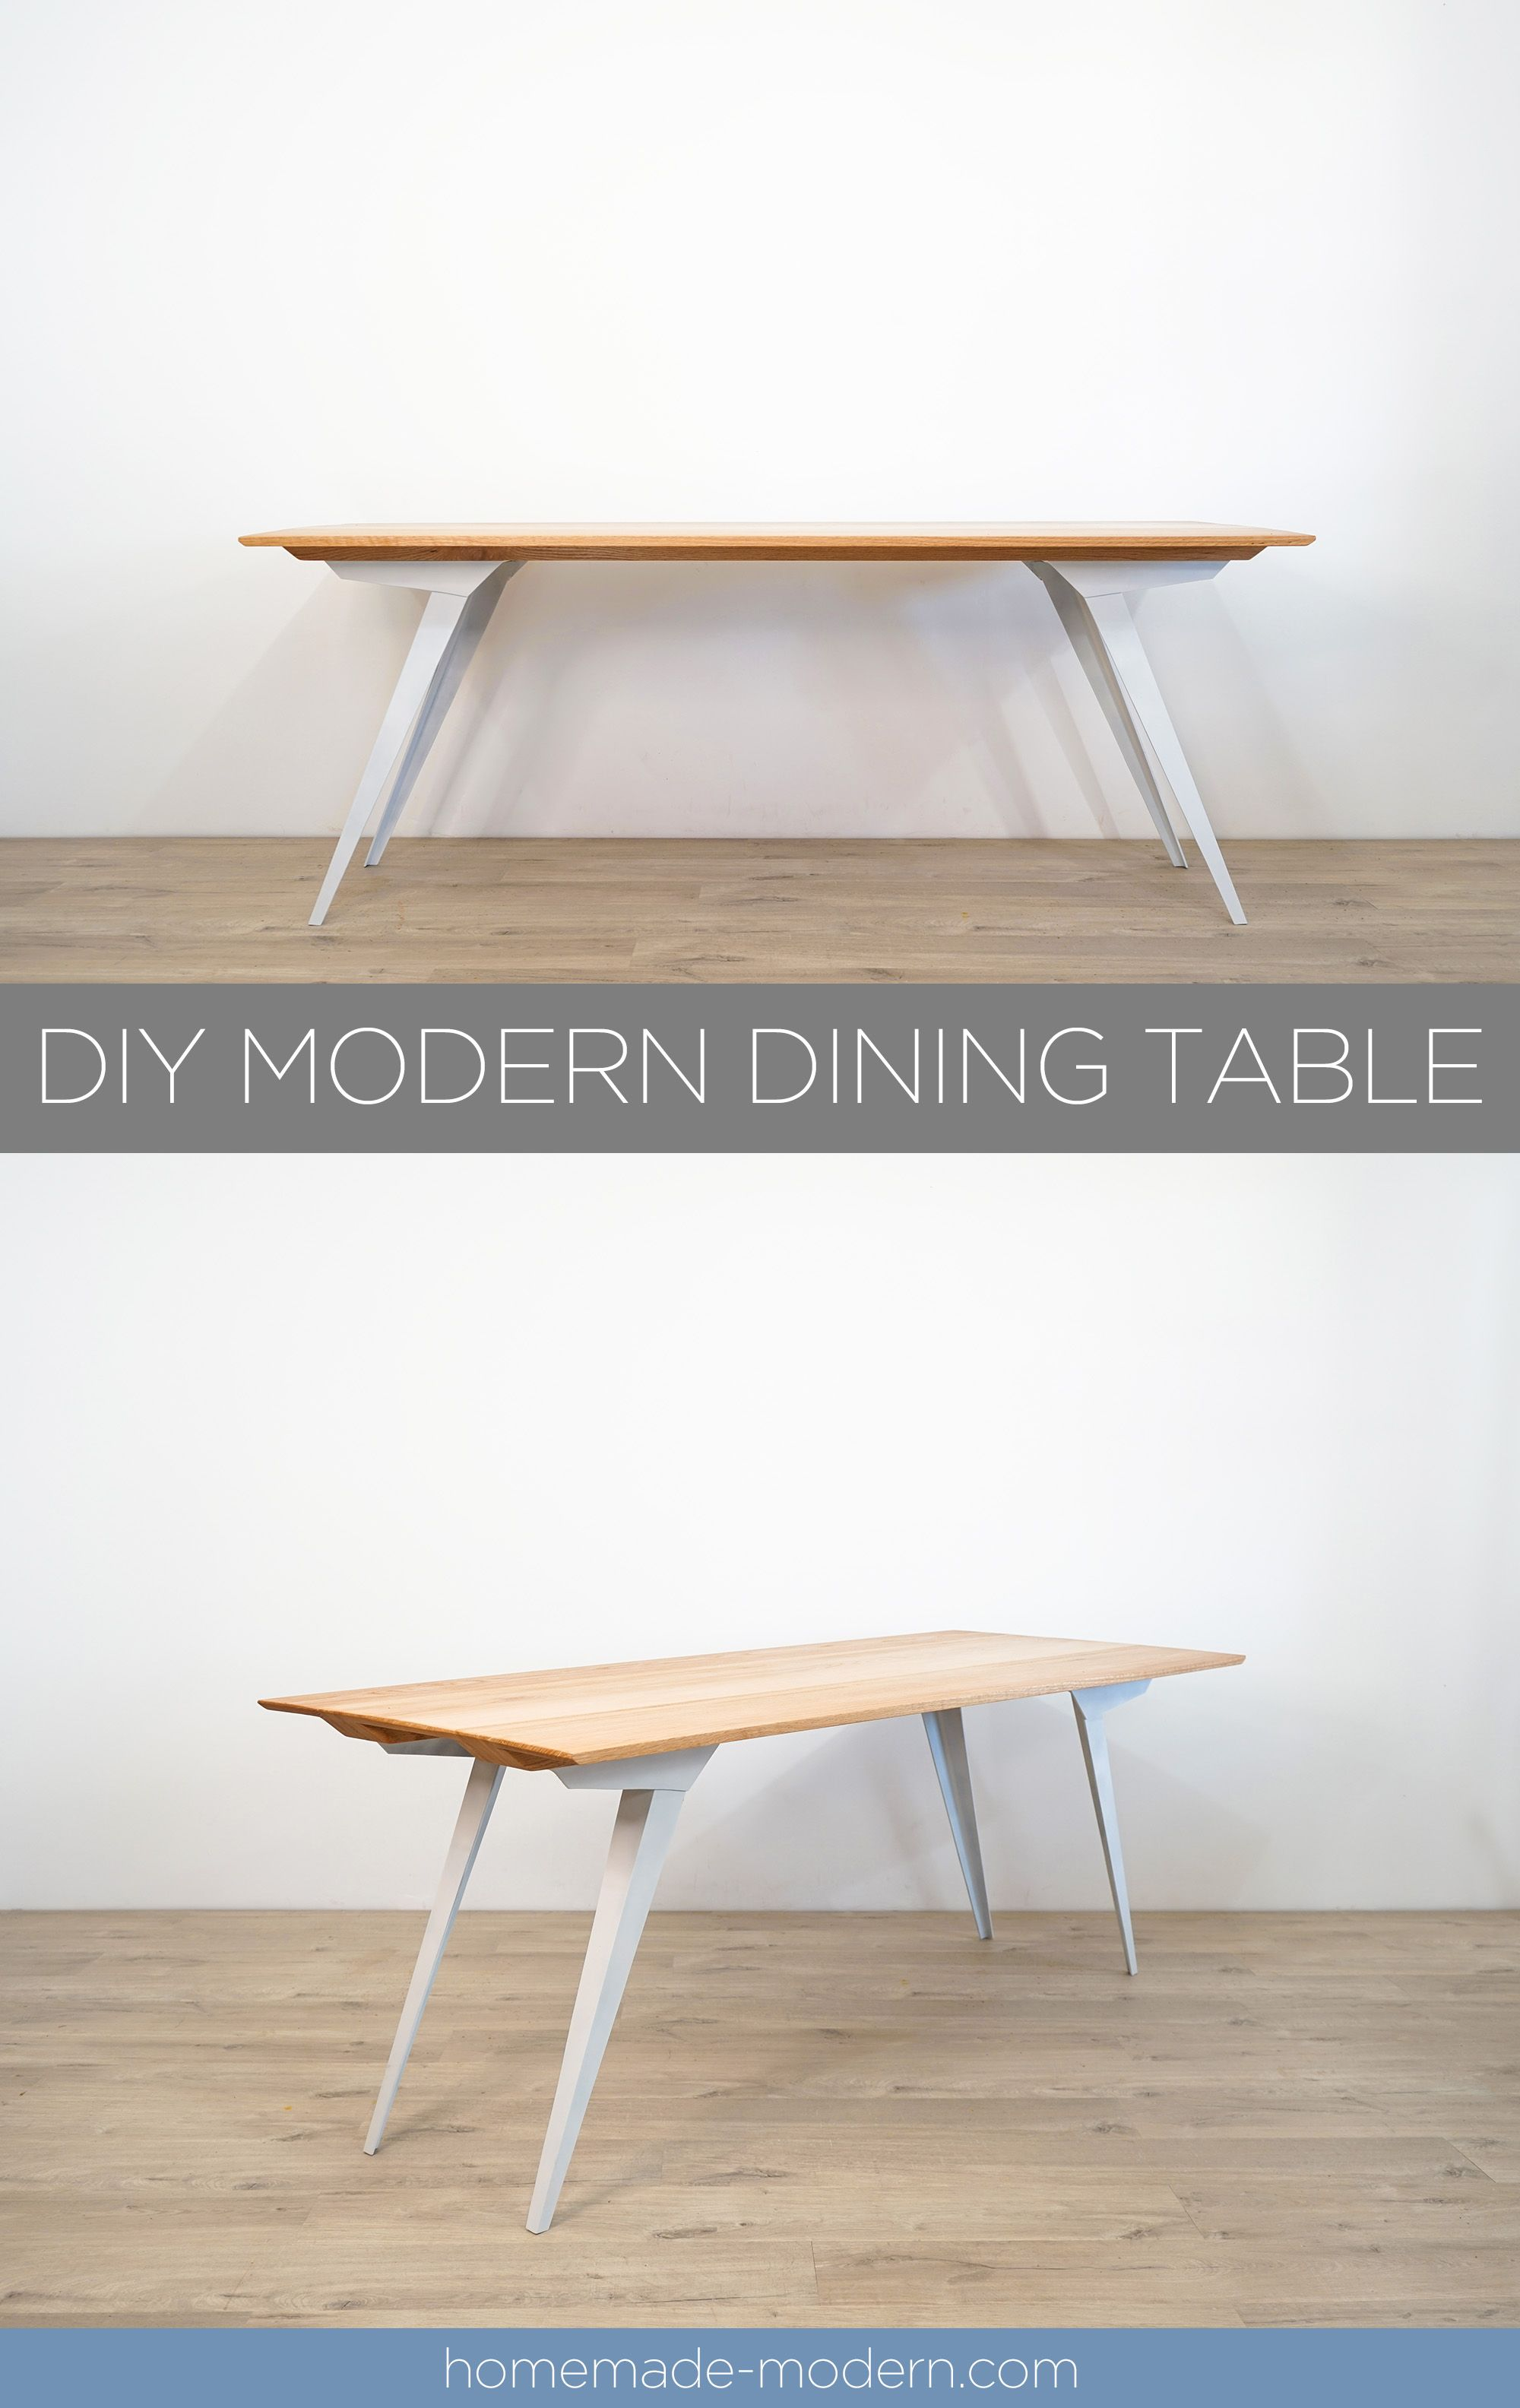 This Diy Modern Dining Table Features Custom Steel Table Legs That